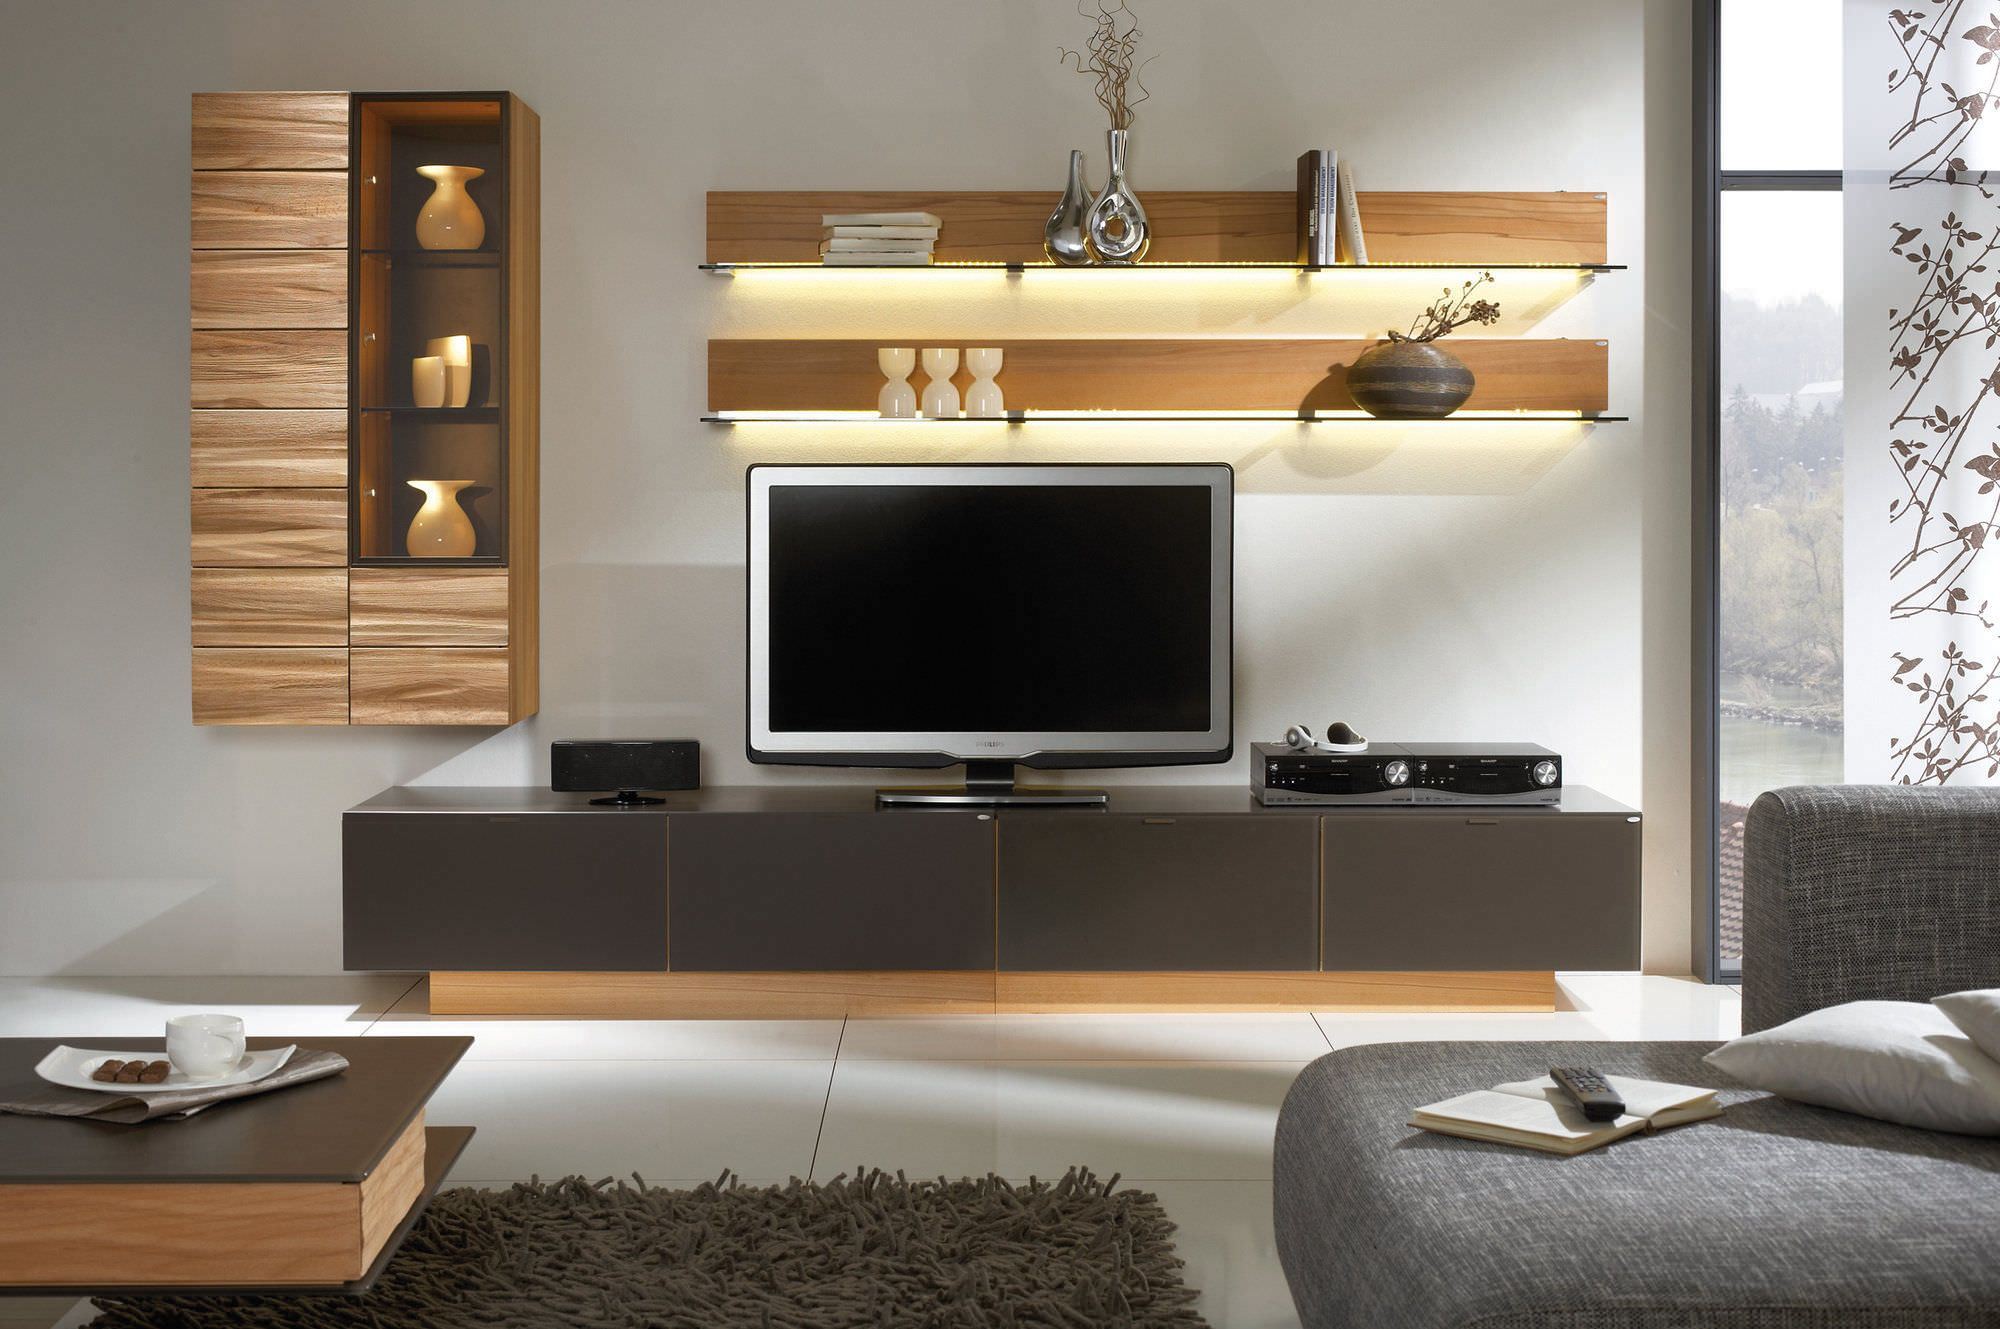 Awesome white brown wood glass cool design contemporary tv for Tv room sofa